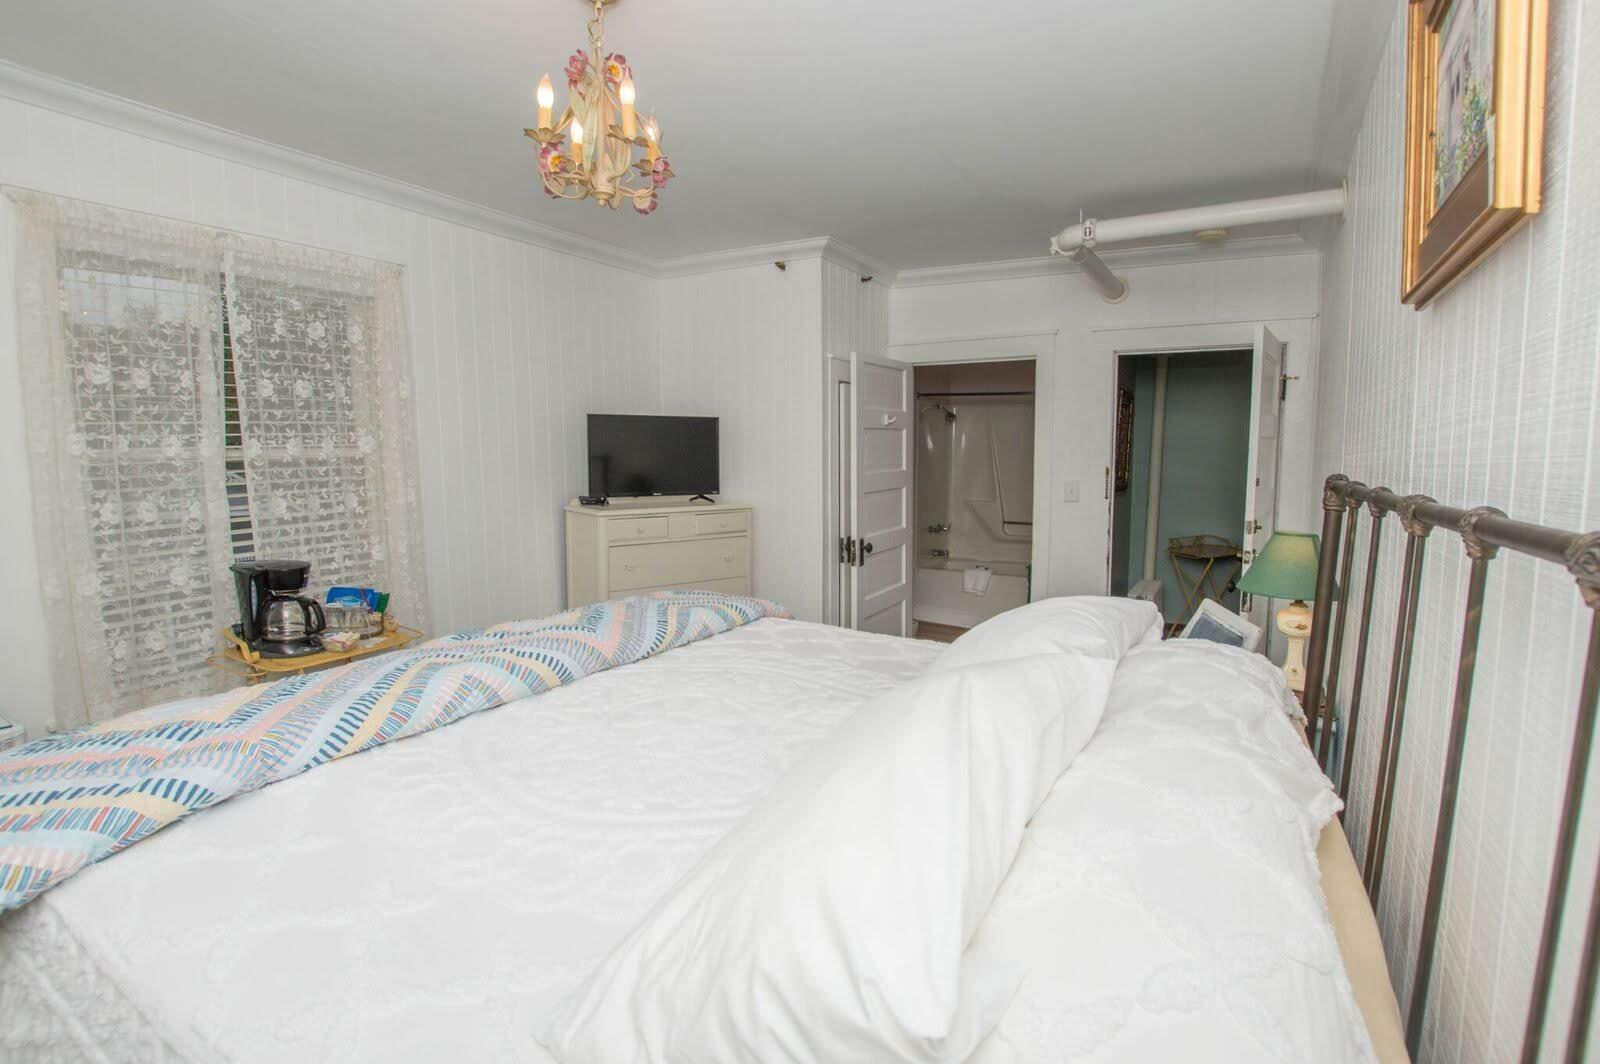 Image for 311KD) King Deluxe Rooms